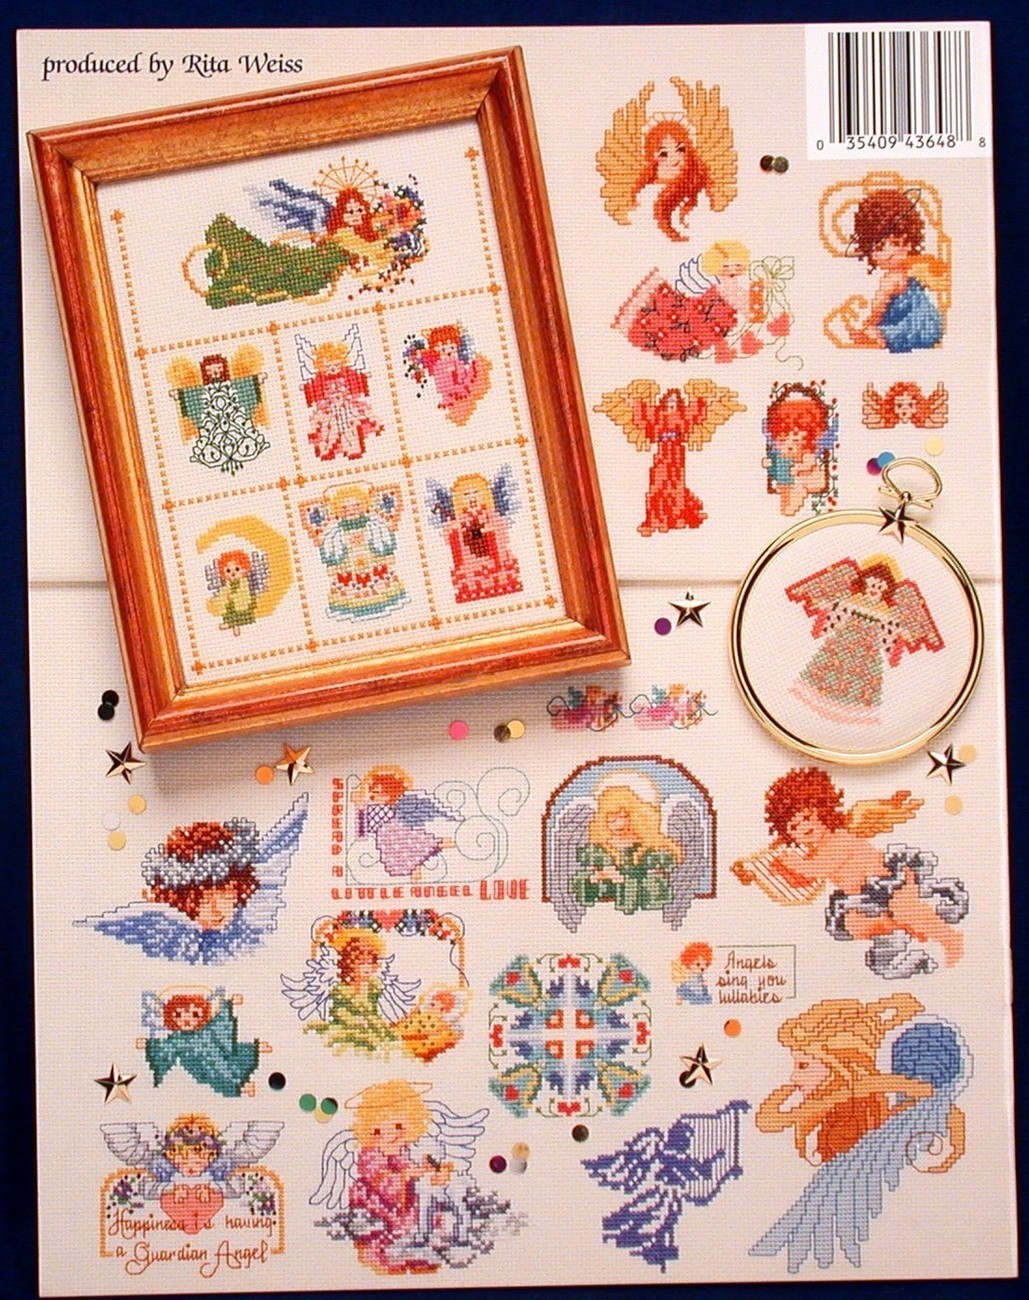 50 Angels Sam Hawkins Needlework Cross Stitch Patterns American School